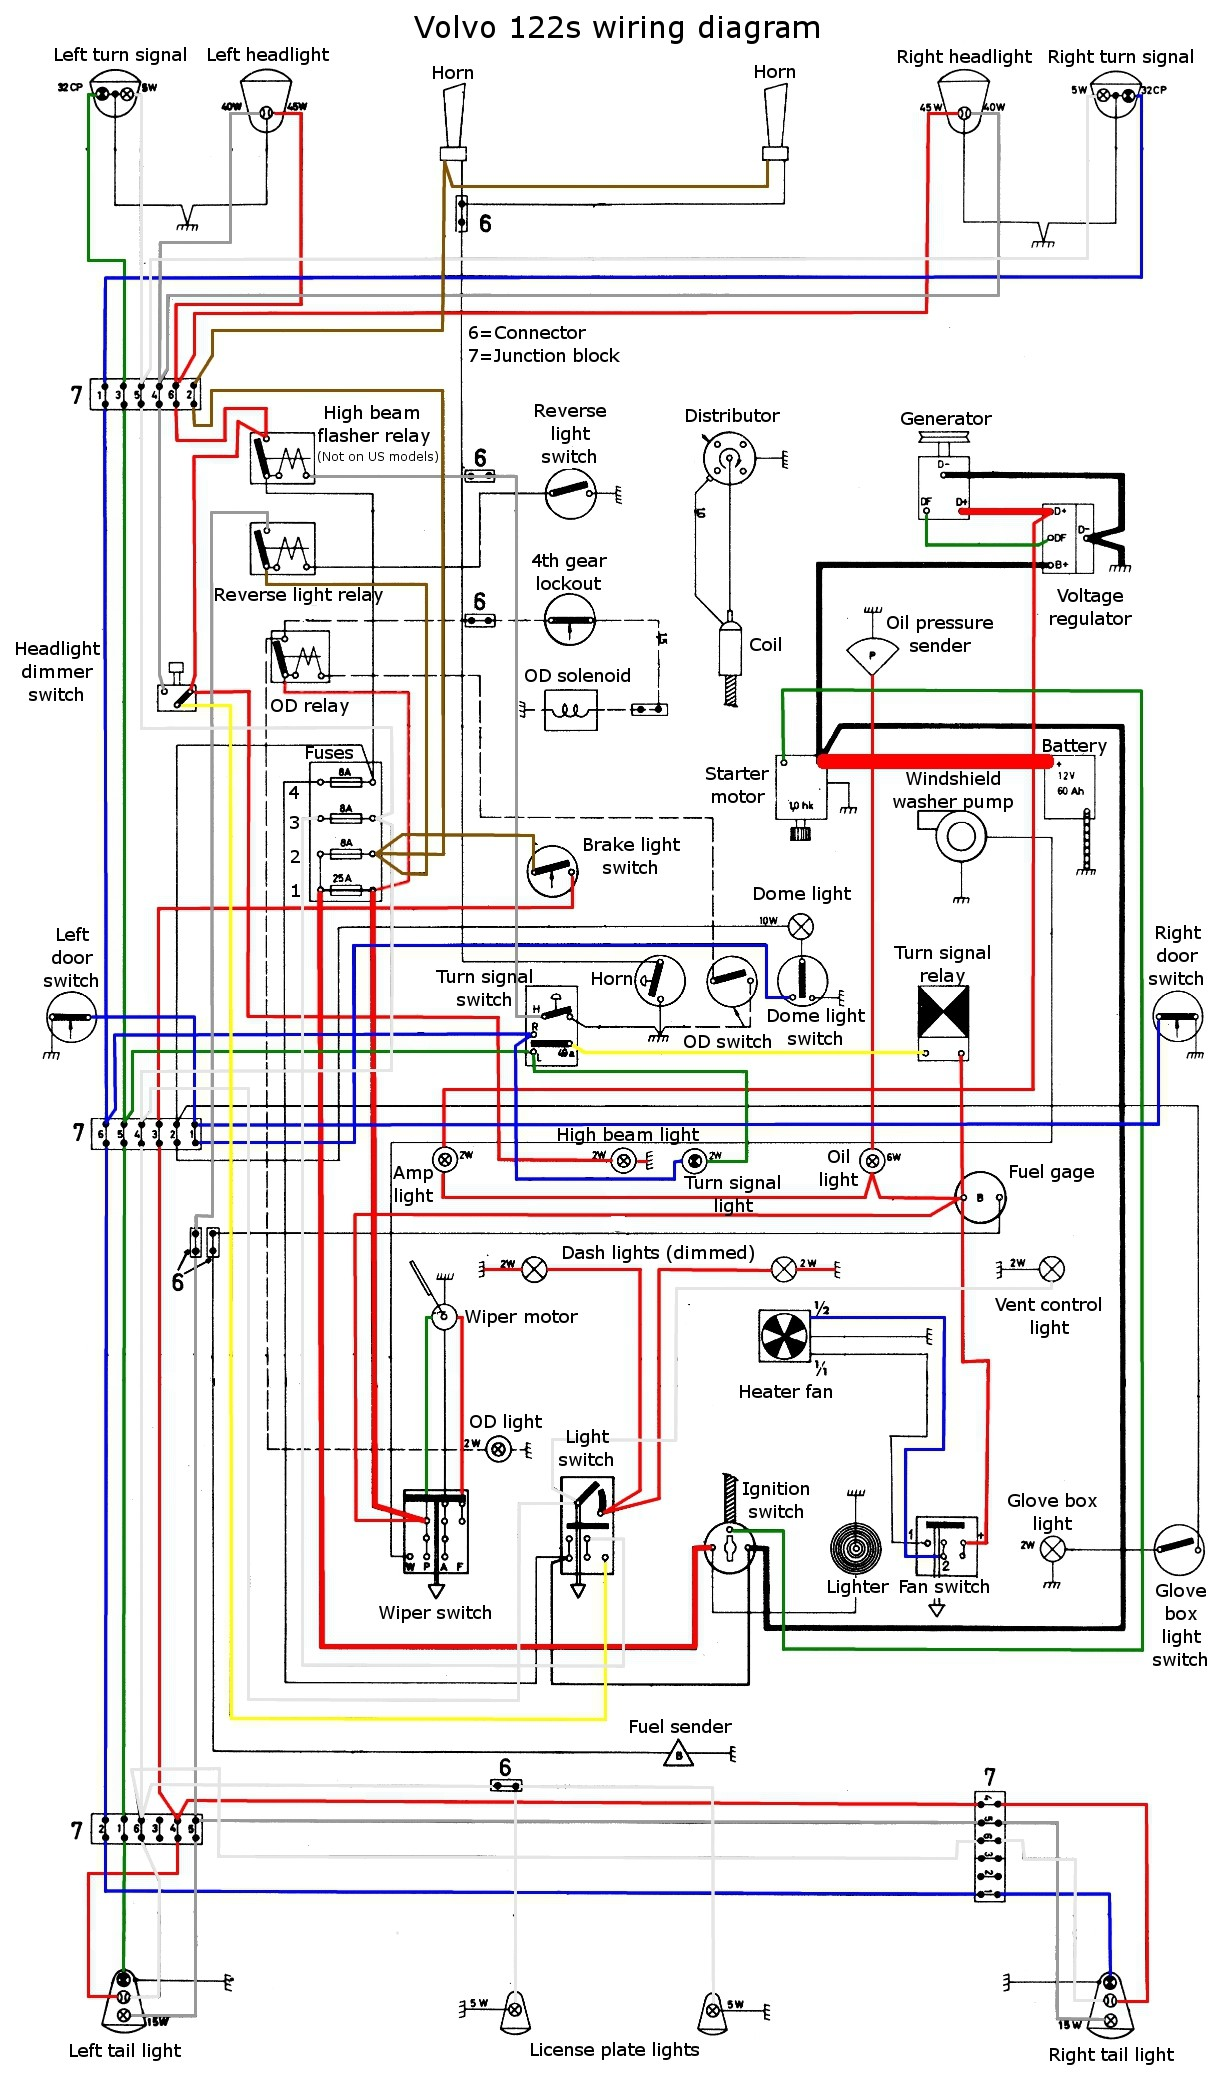 Car Dome Light Wiring Diagram 1955 Passenger 2 Switch Mount Ponents And Wire Breadboard Note The Color Coding In This